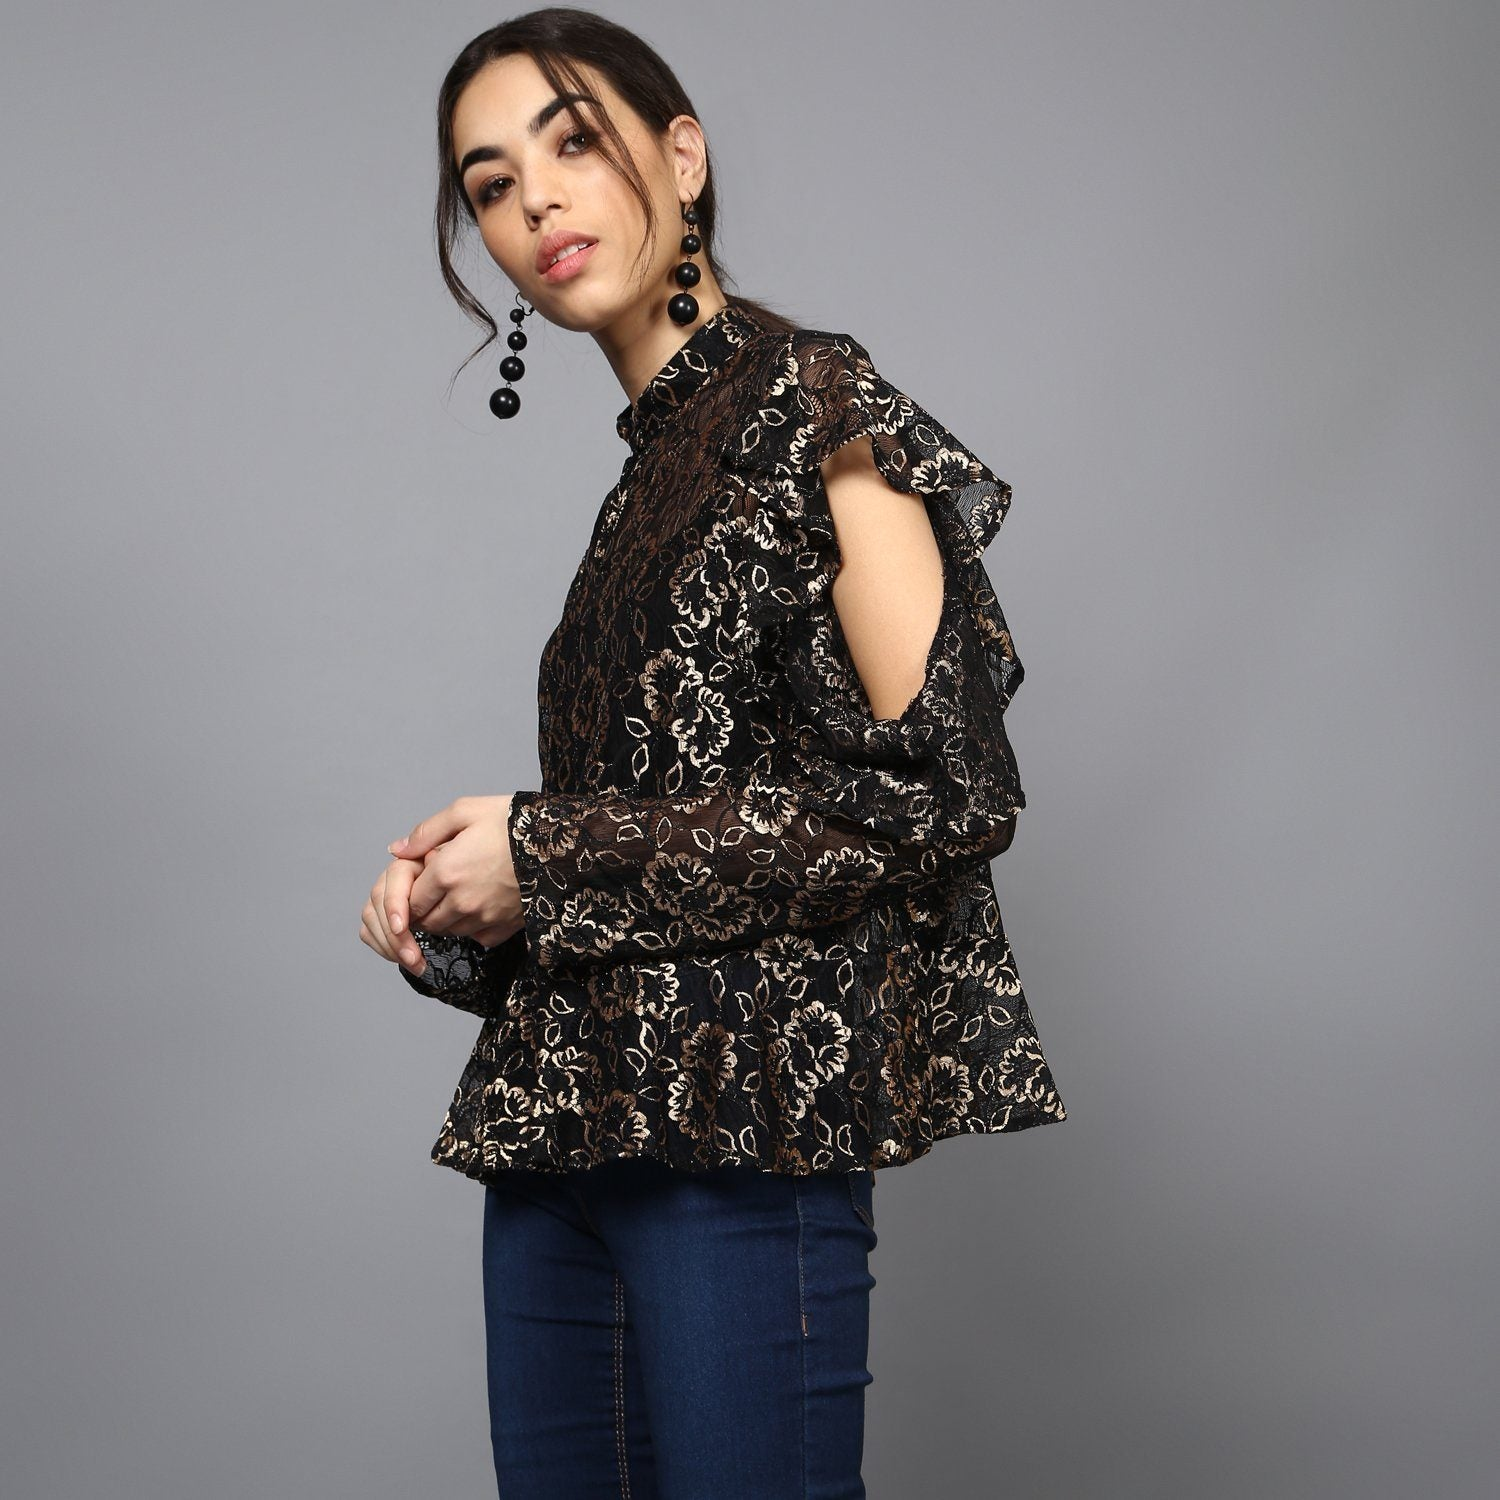 Sheer Gold Lace Ruffled Sleeve Blouse